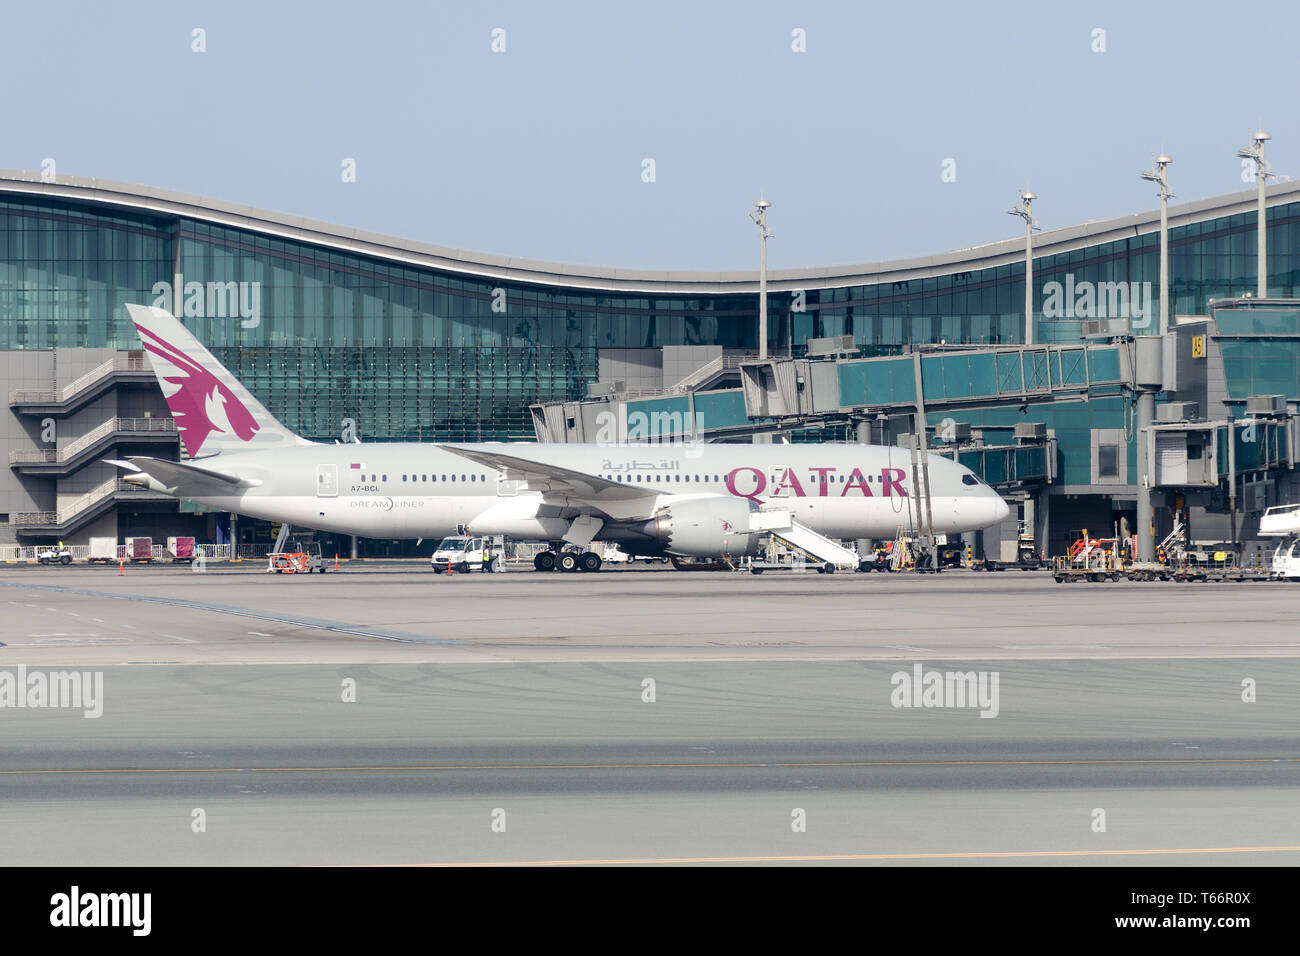 Qatar, Doha,  2018-05-01: Aircraft Qatar Airlines in the parking lot at the Hamad International Airport. Pre-flight check, ground handling. Stock Photo